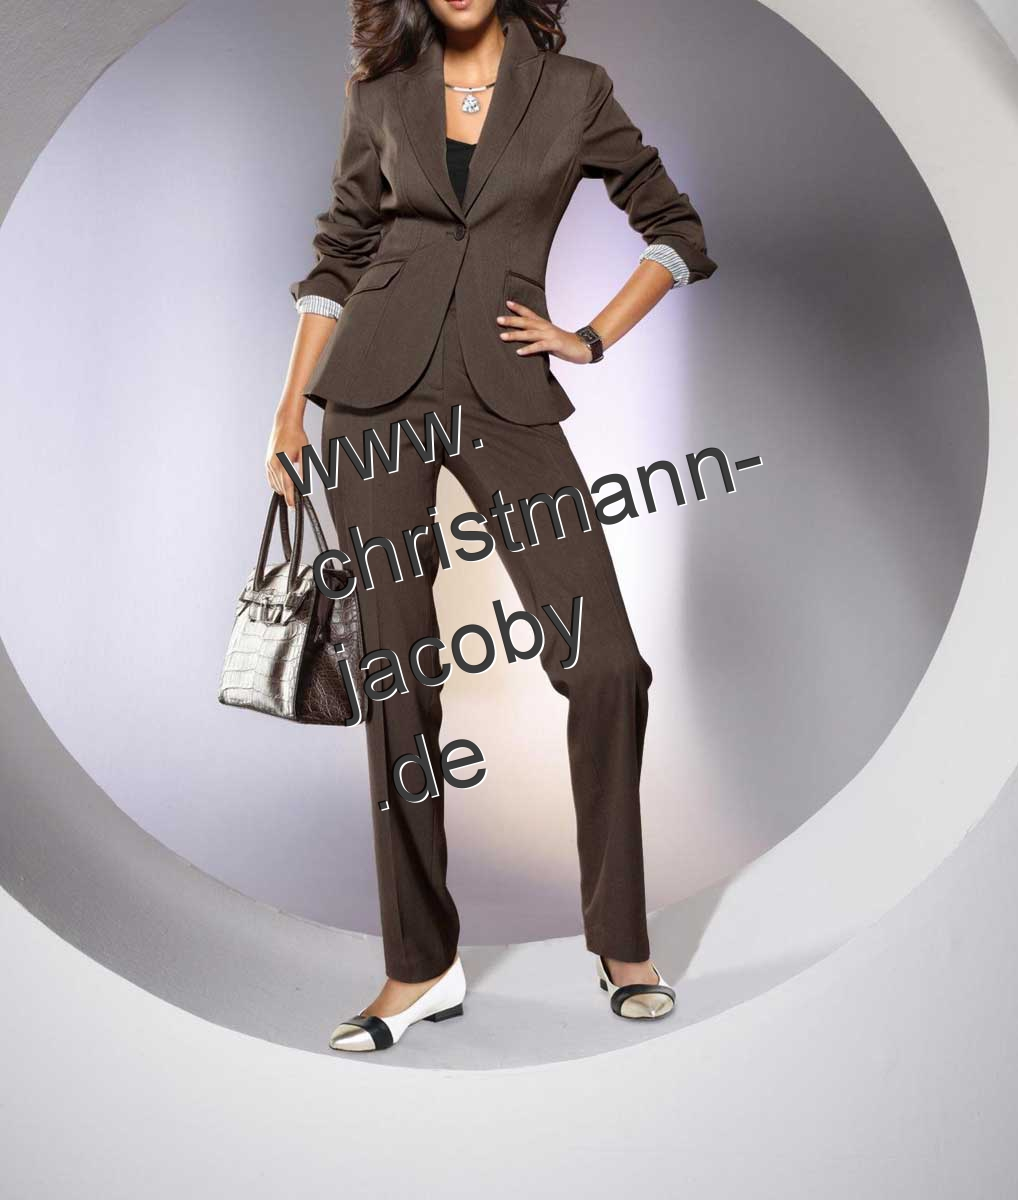 Women's suit, taupe